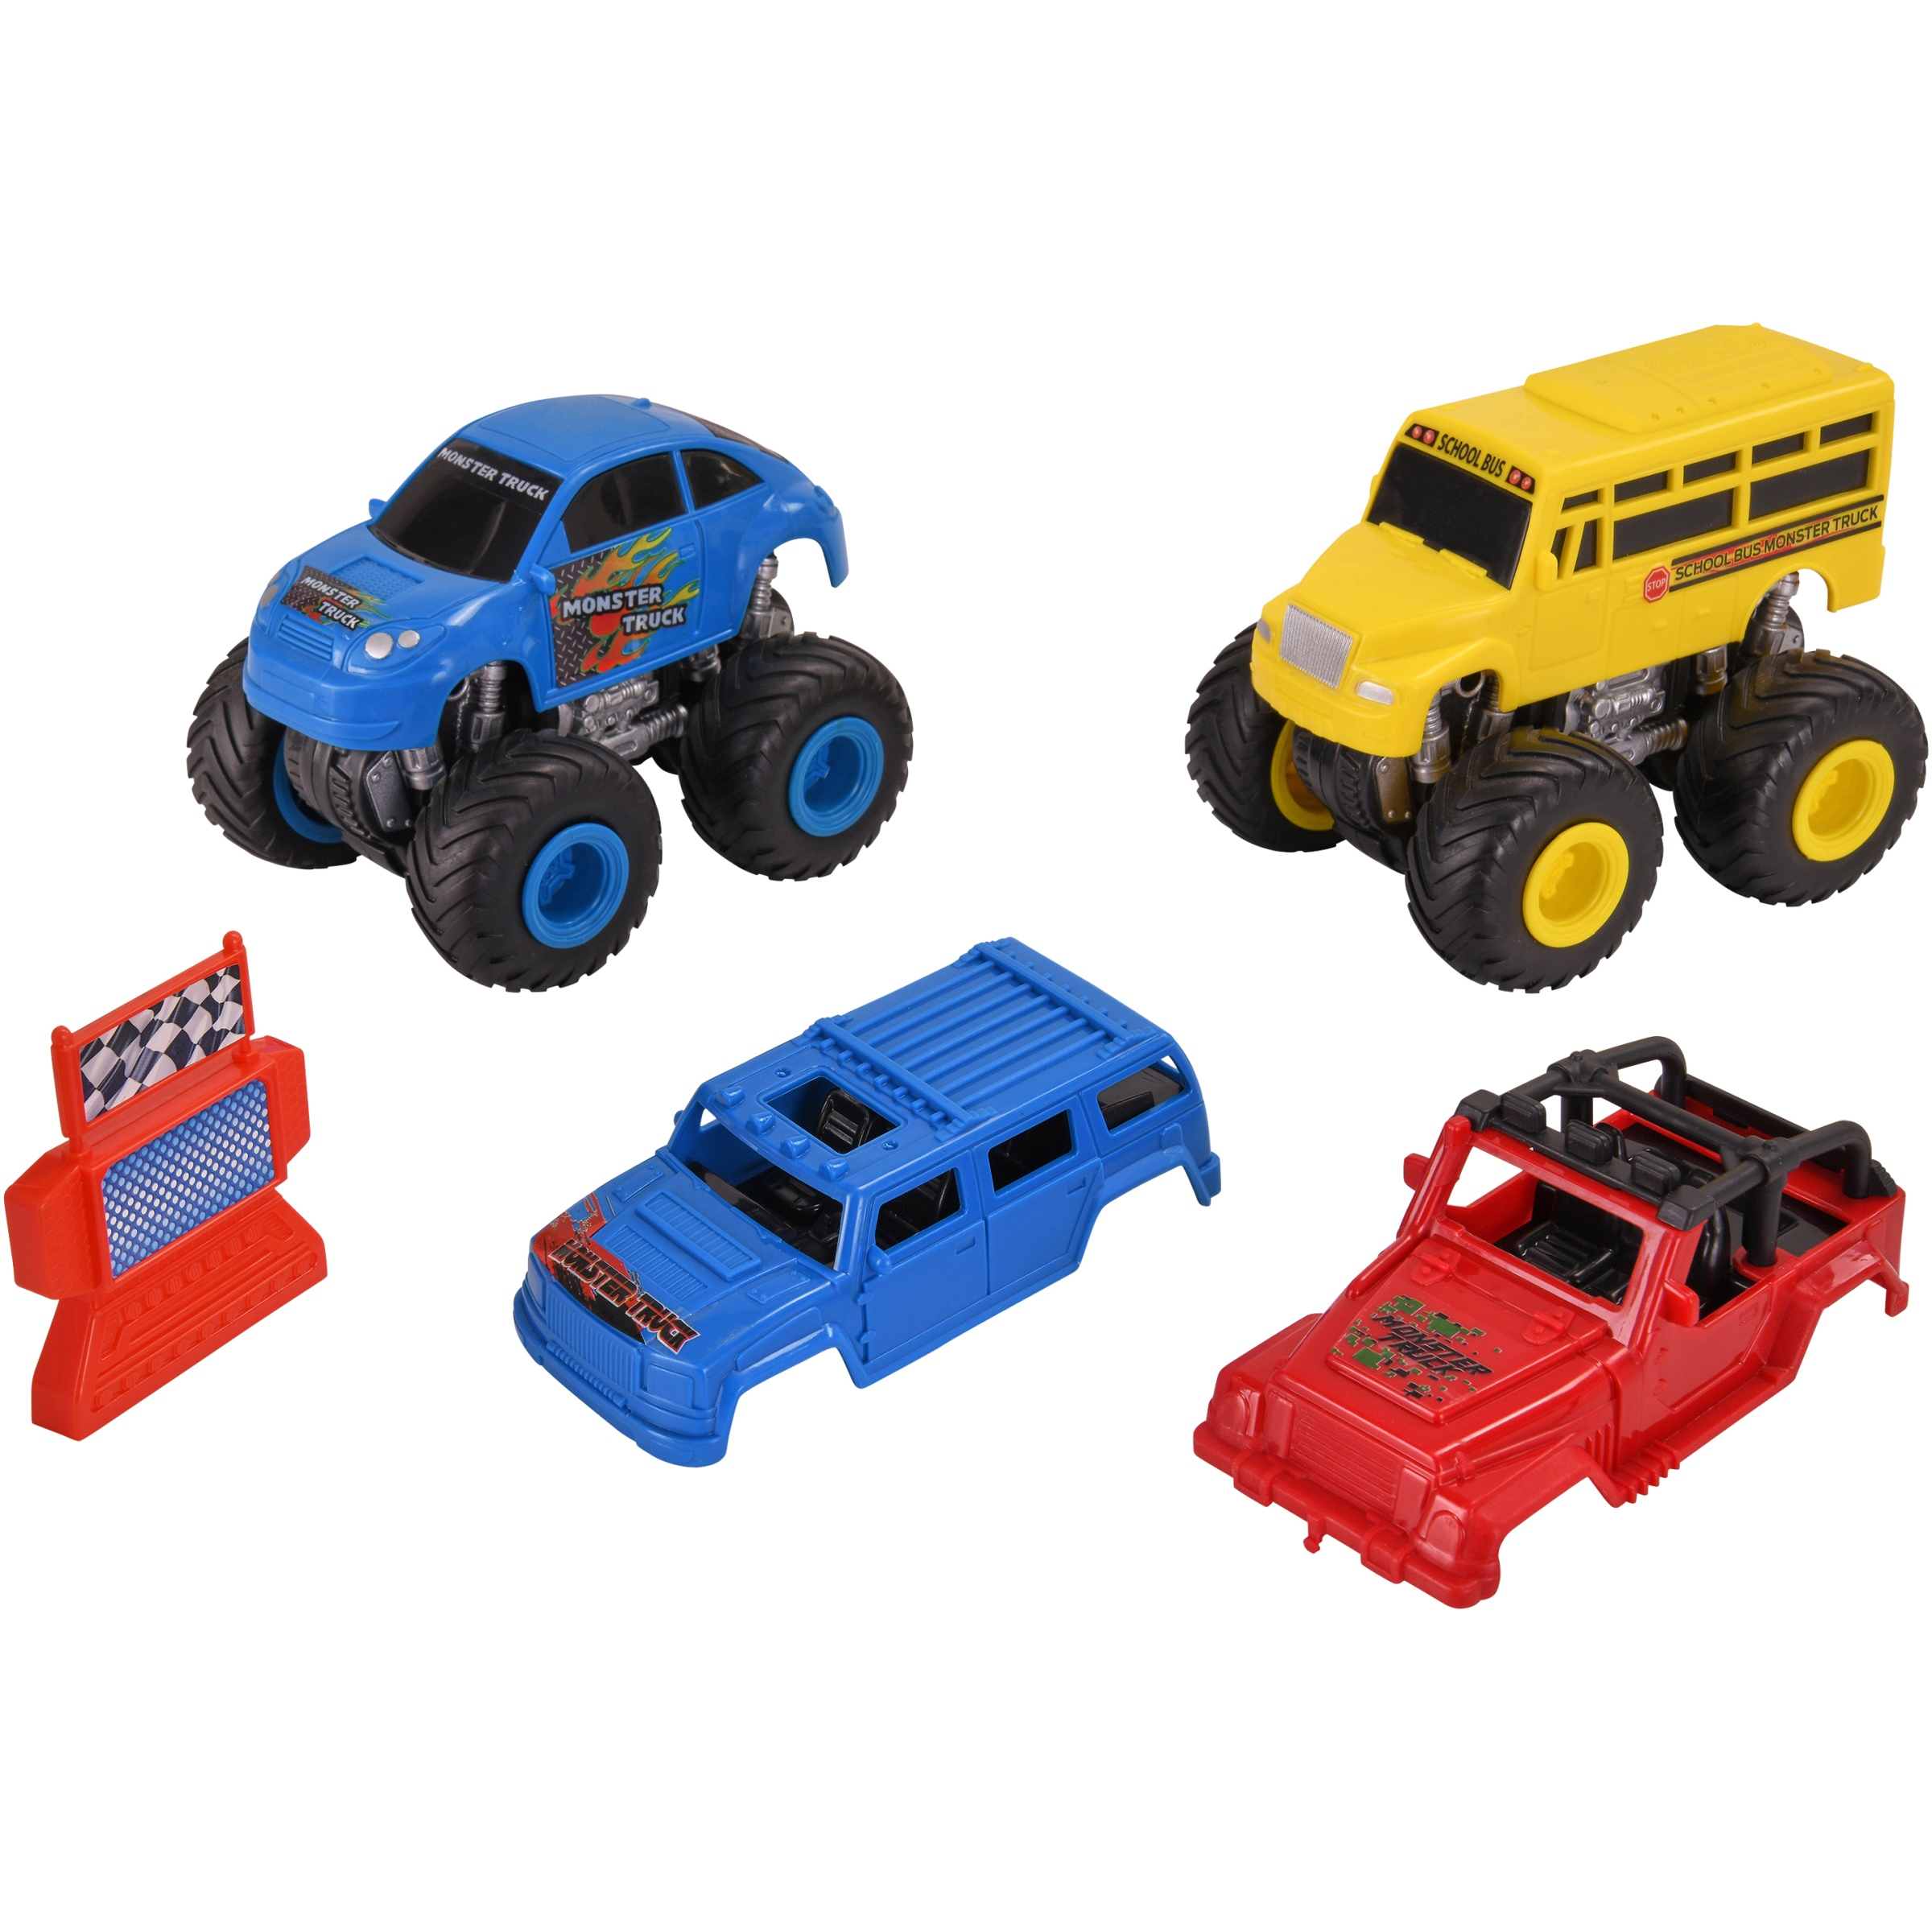 Kid Connection 7-Piece Friction Powered Monster Truck Play Set, Blue & Yellow